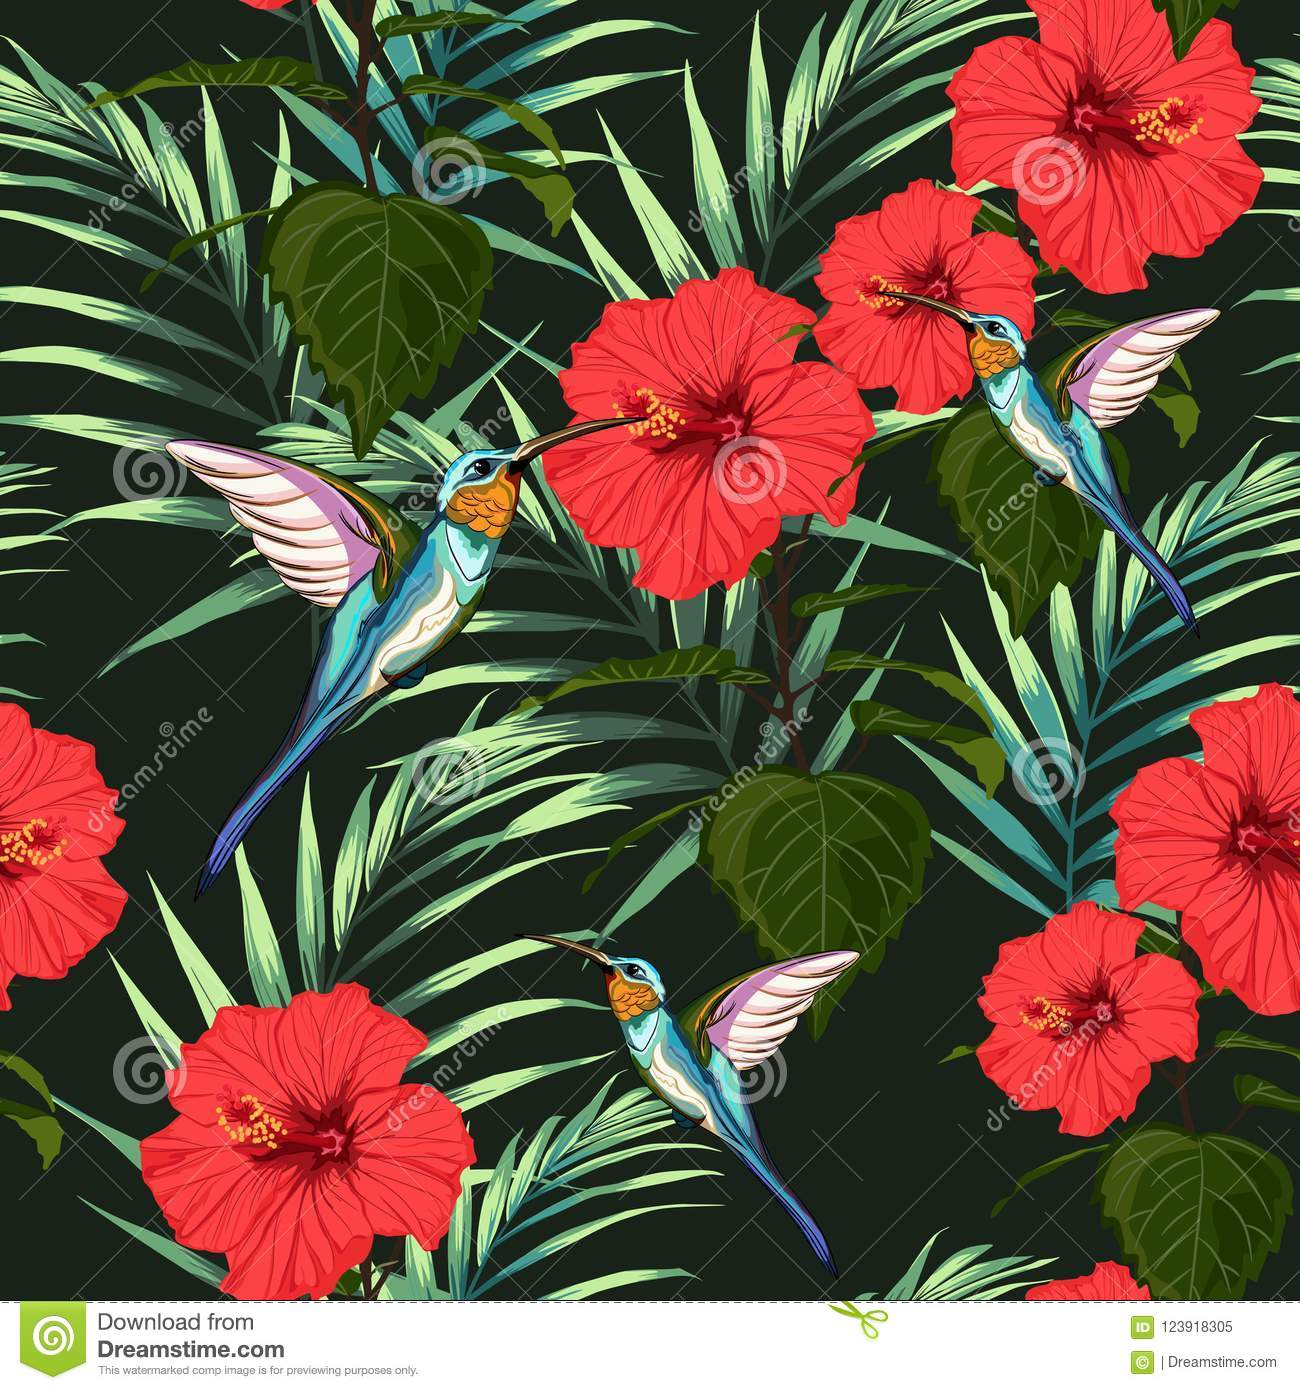 Beautiful seamless vector floral summer pattern background with hummingbird, red hibiscus flowers and palm leaves.